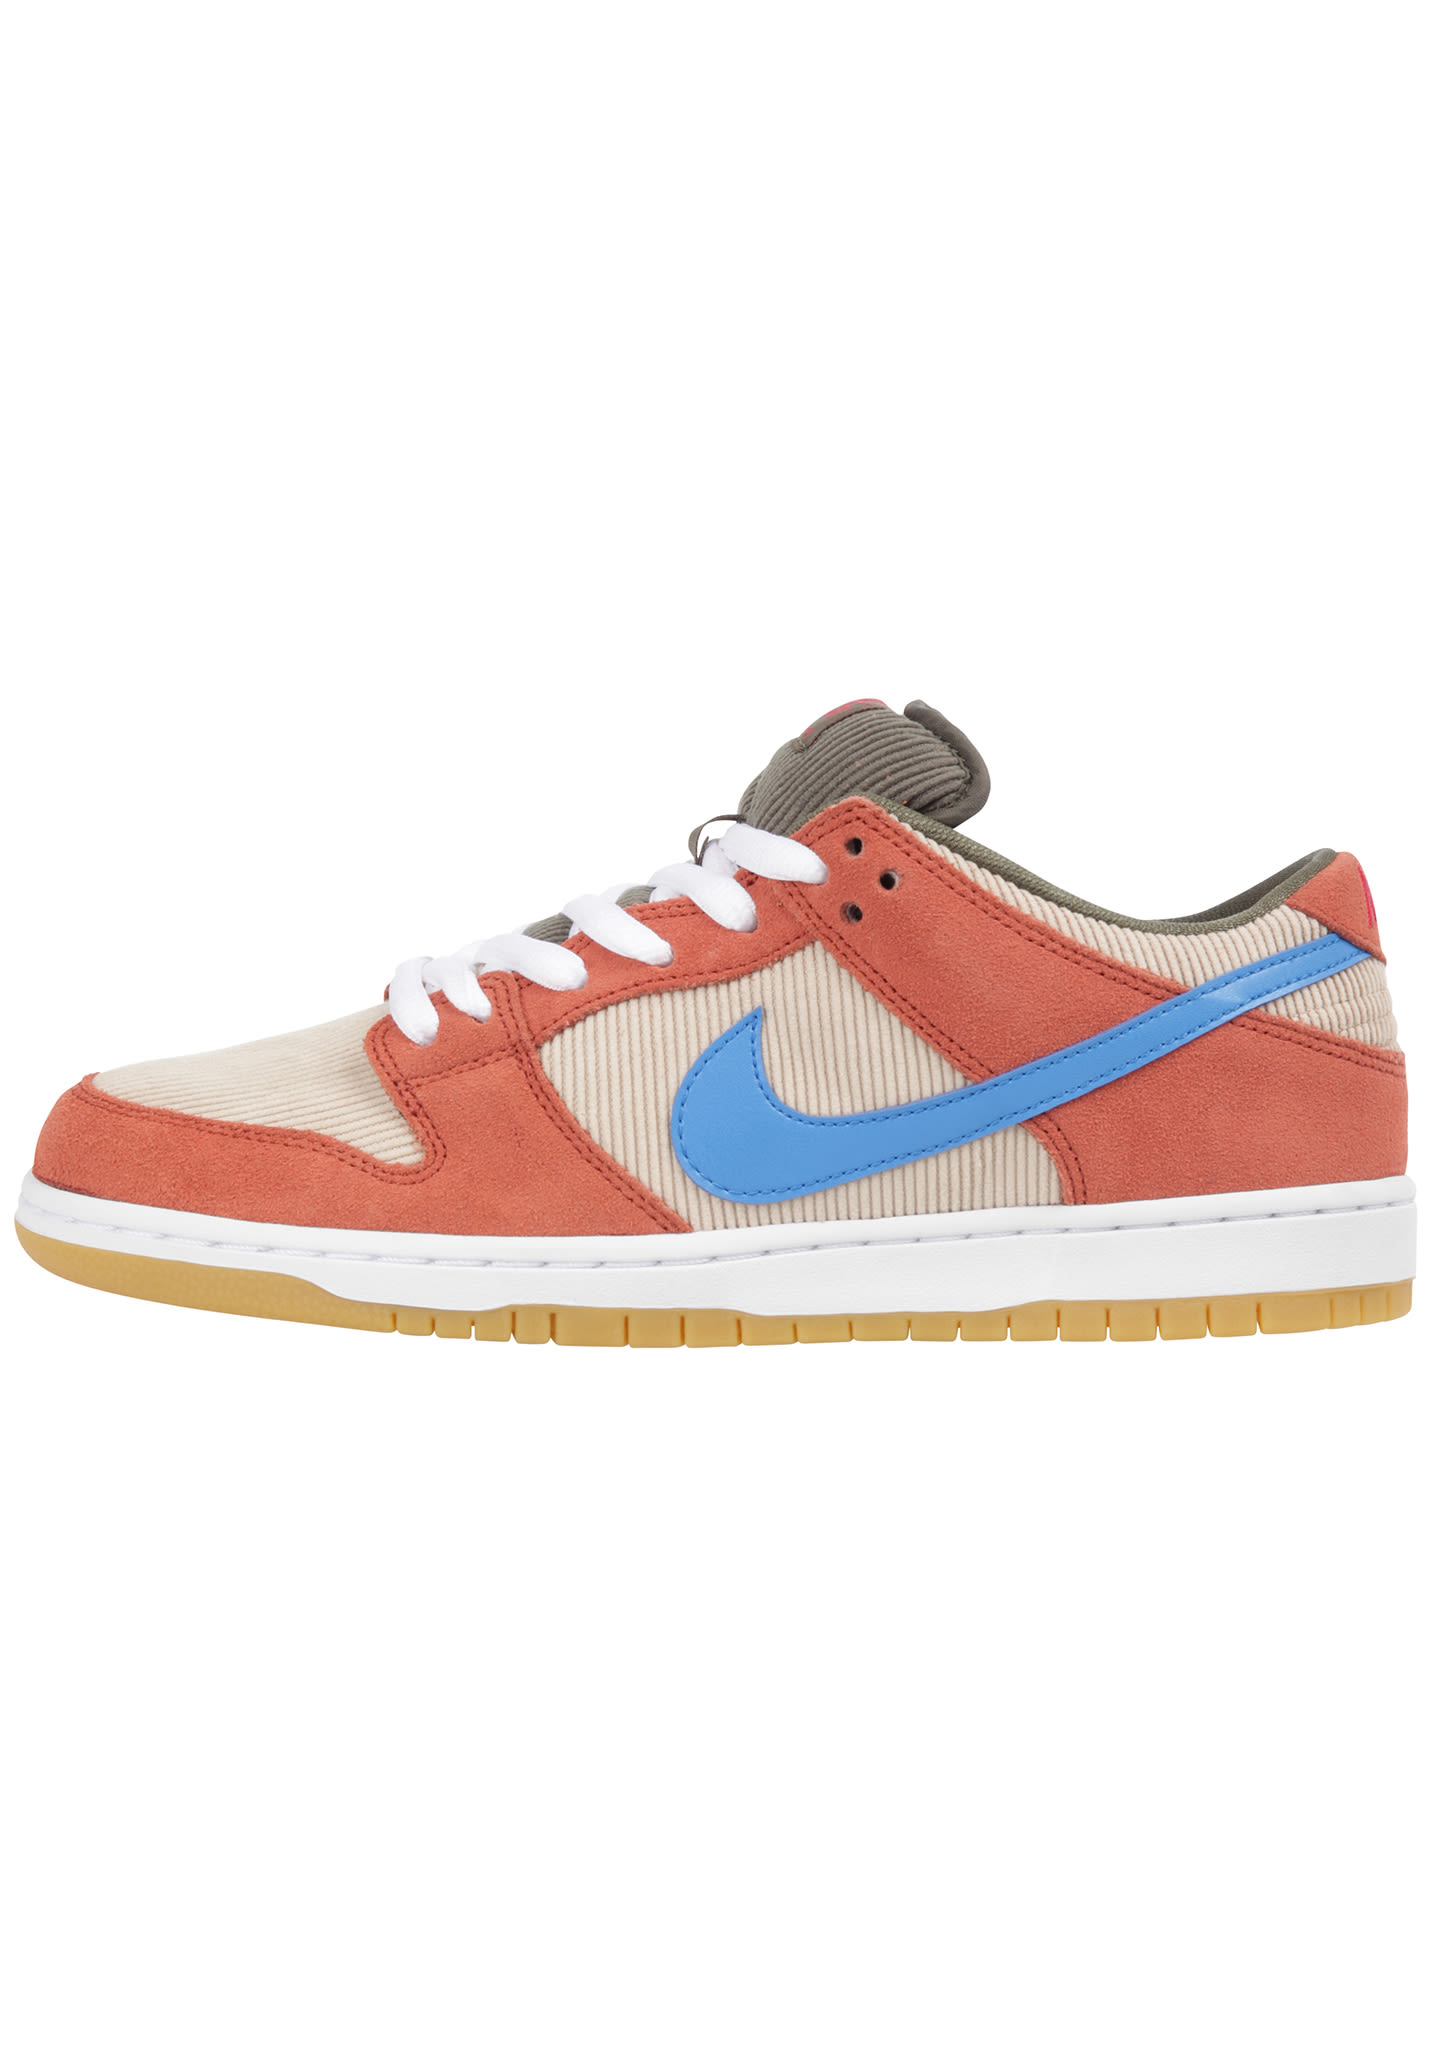 2d8ce497265b2 NIKE SB Dunk Low Pro - Sneakers for Men - Multicolor - Planet Sports